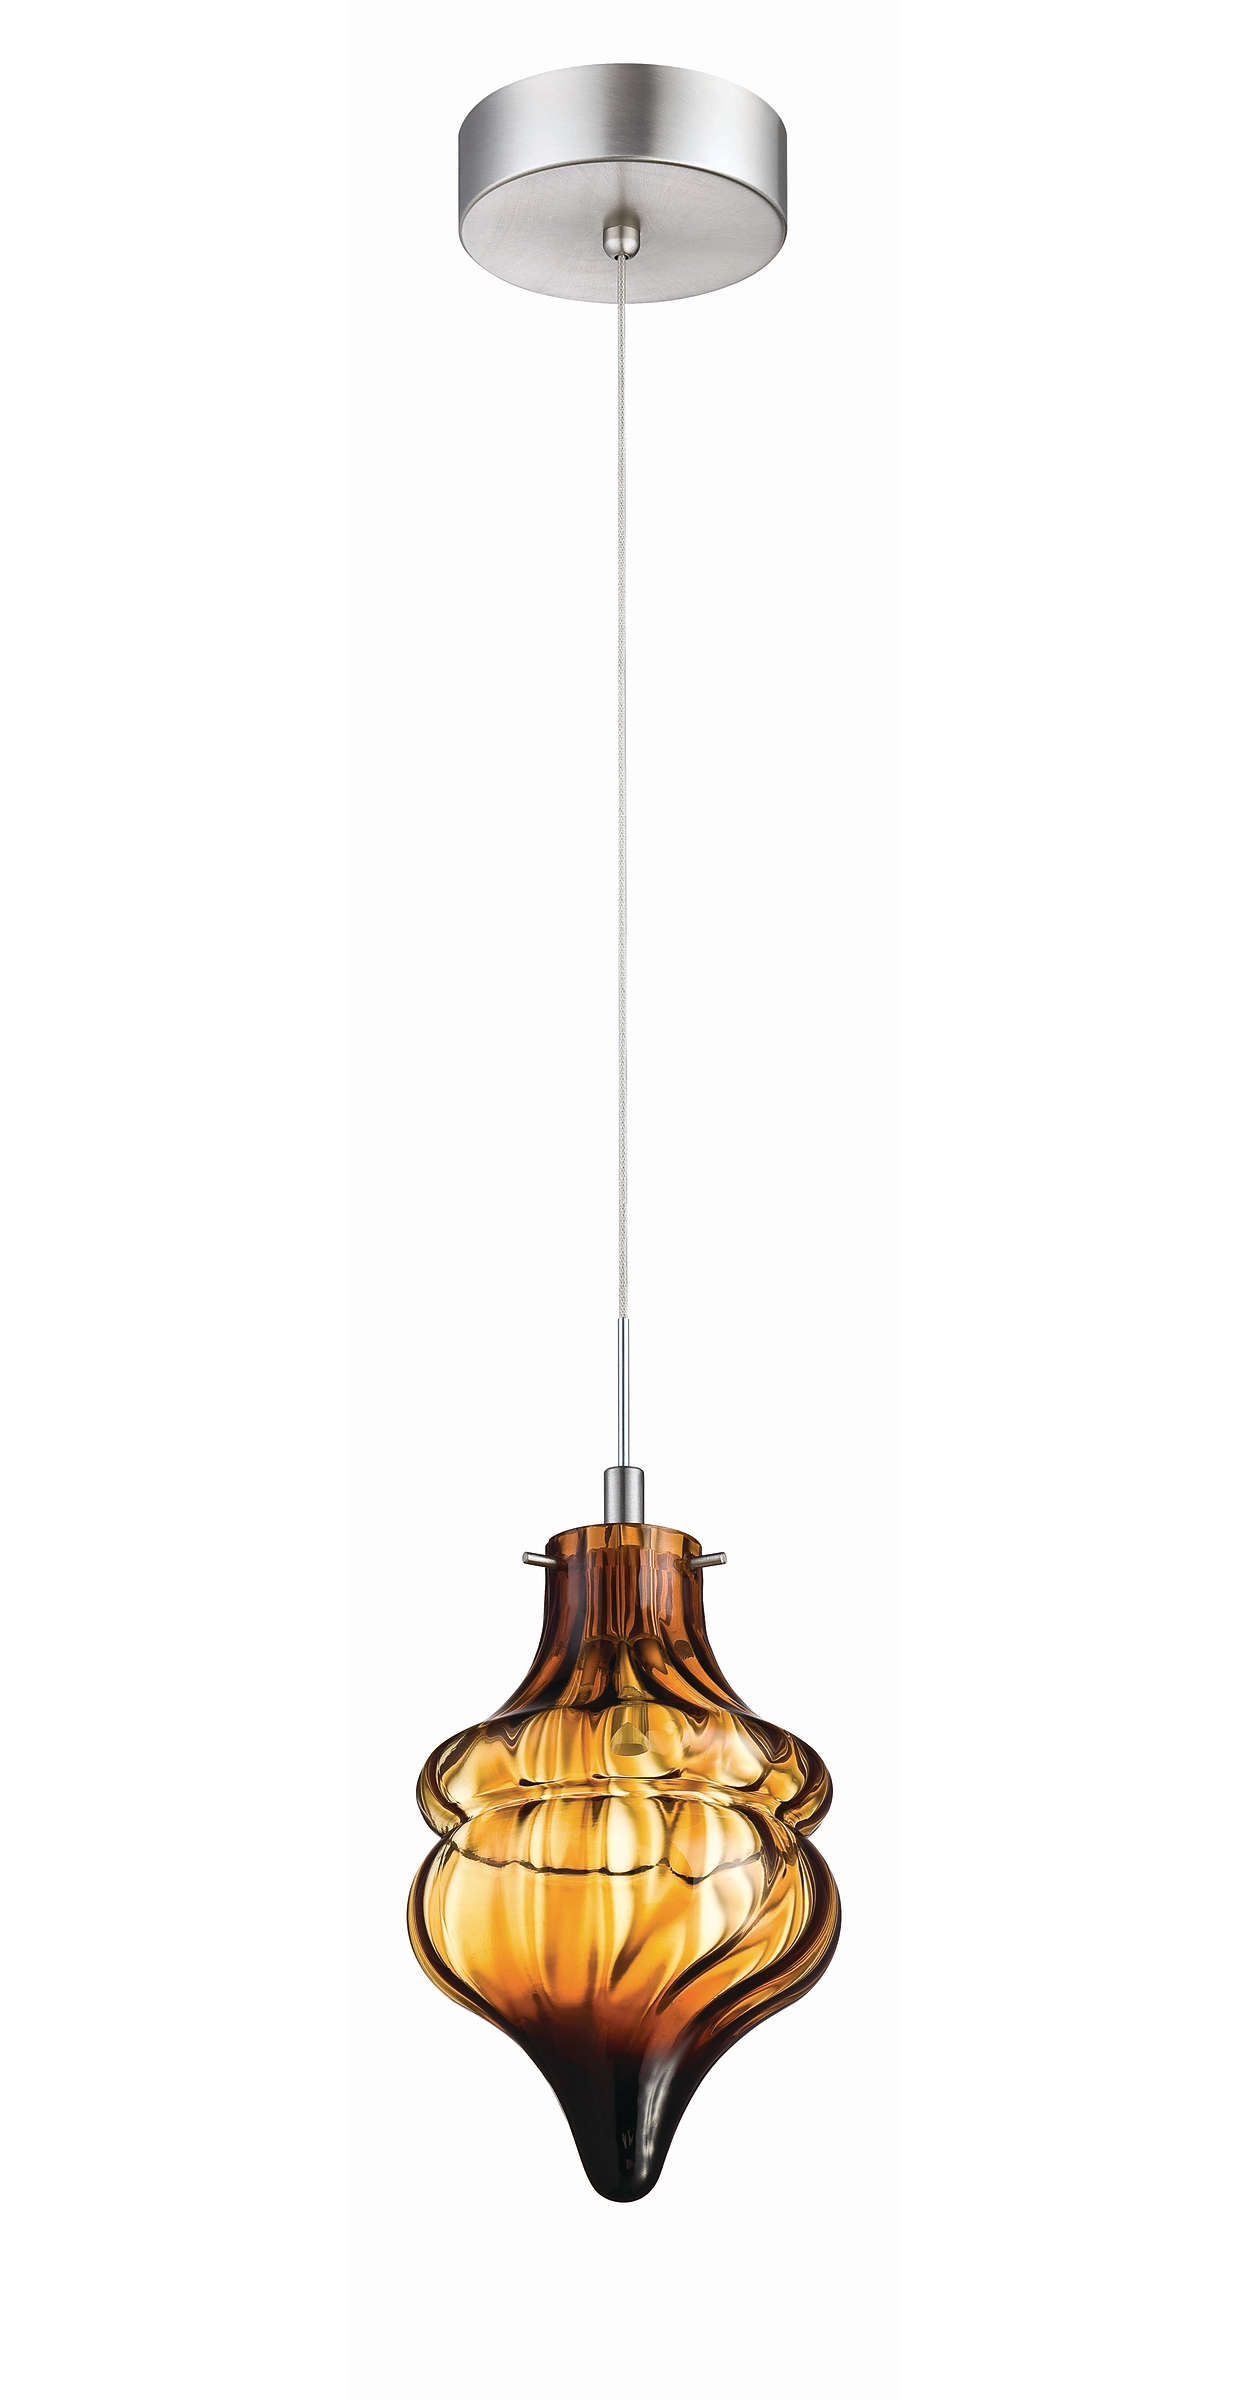 Fez 1-light LED pendant in Satin Nickel finish